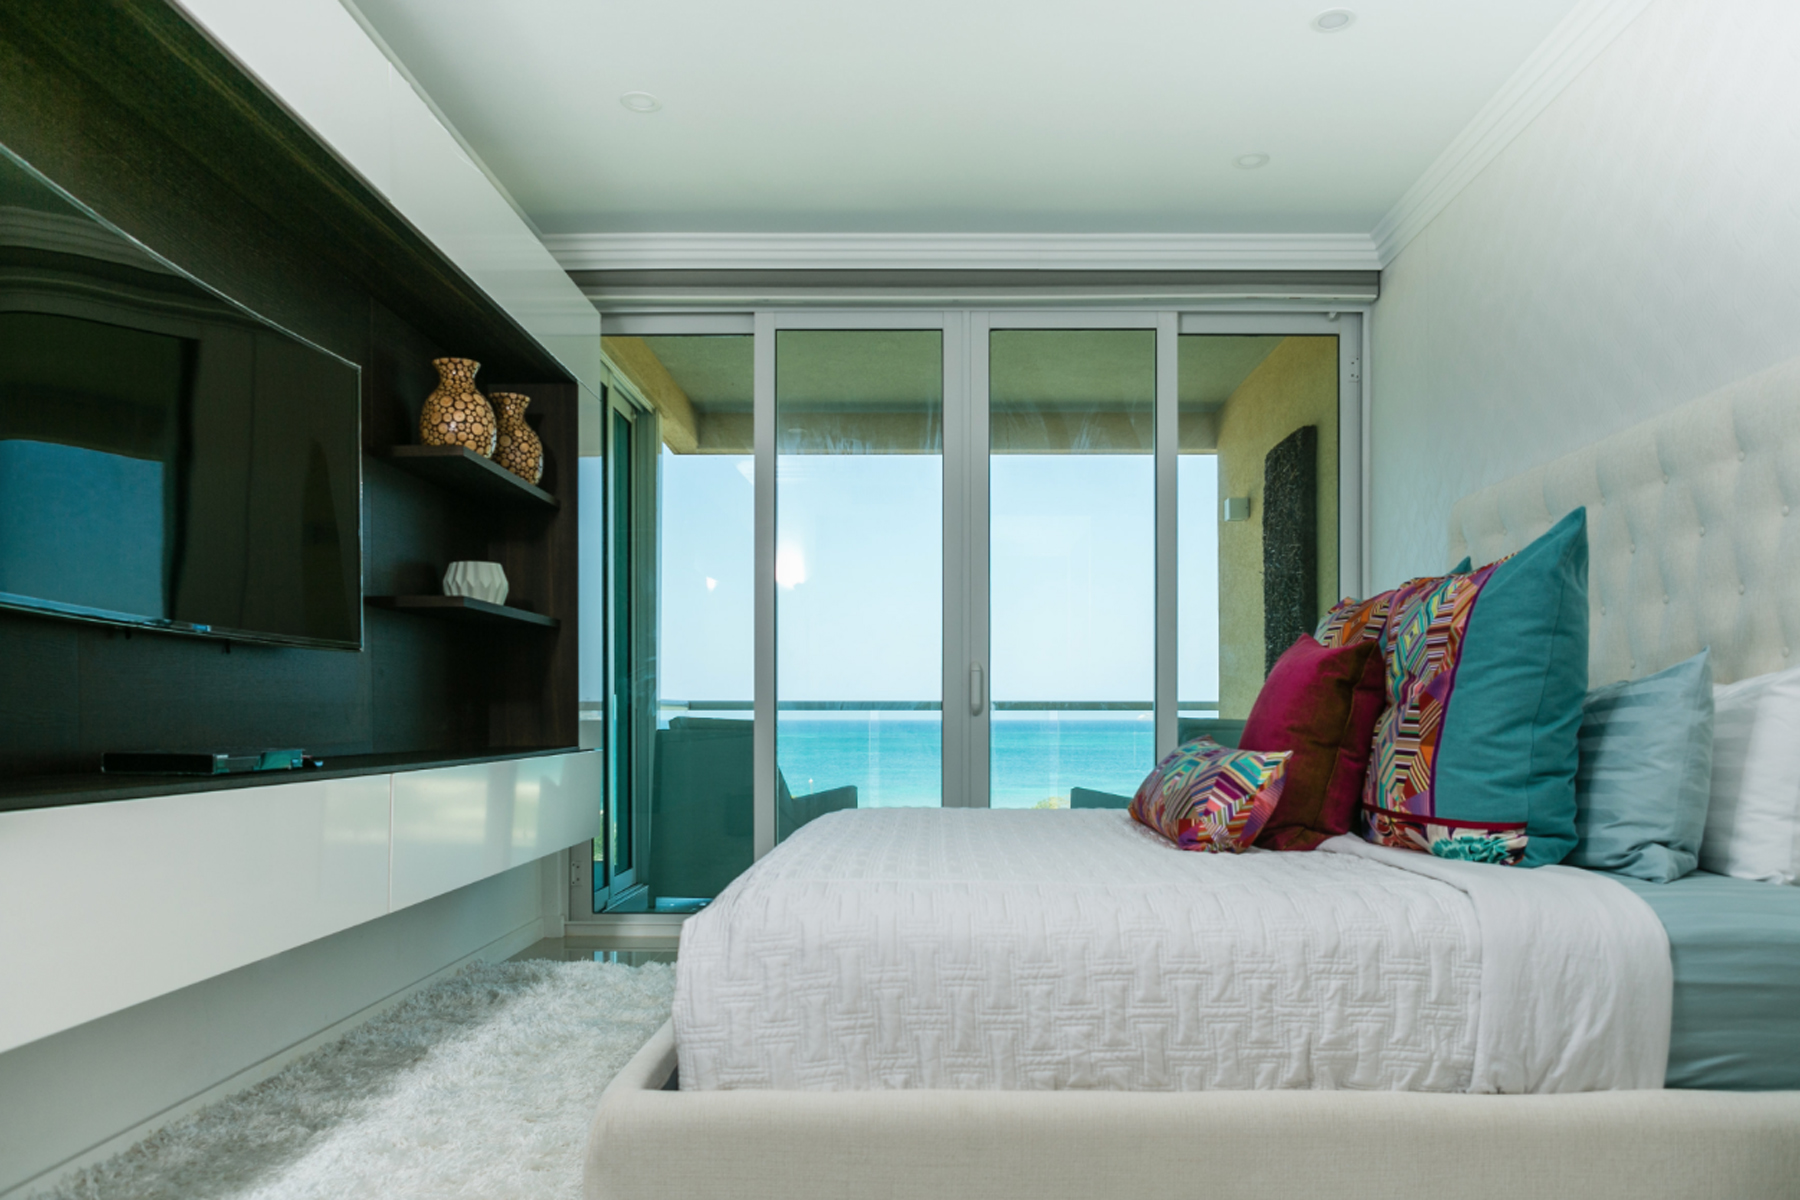 Additional photo for property listing at Azure Residences 3 bedroom Eagle Beach, Aruba Aruba